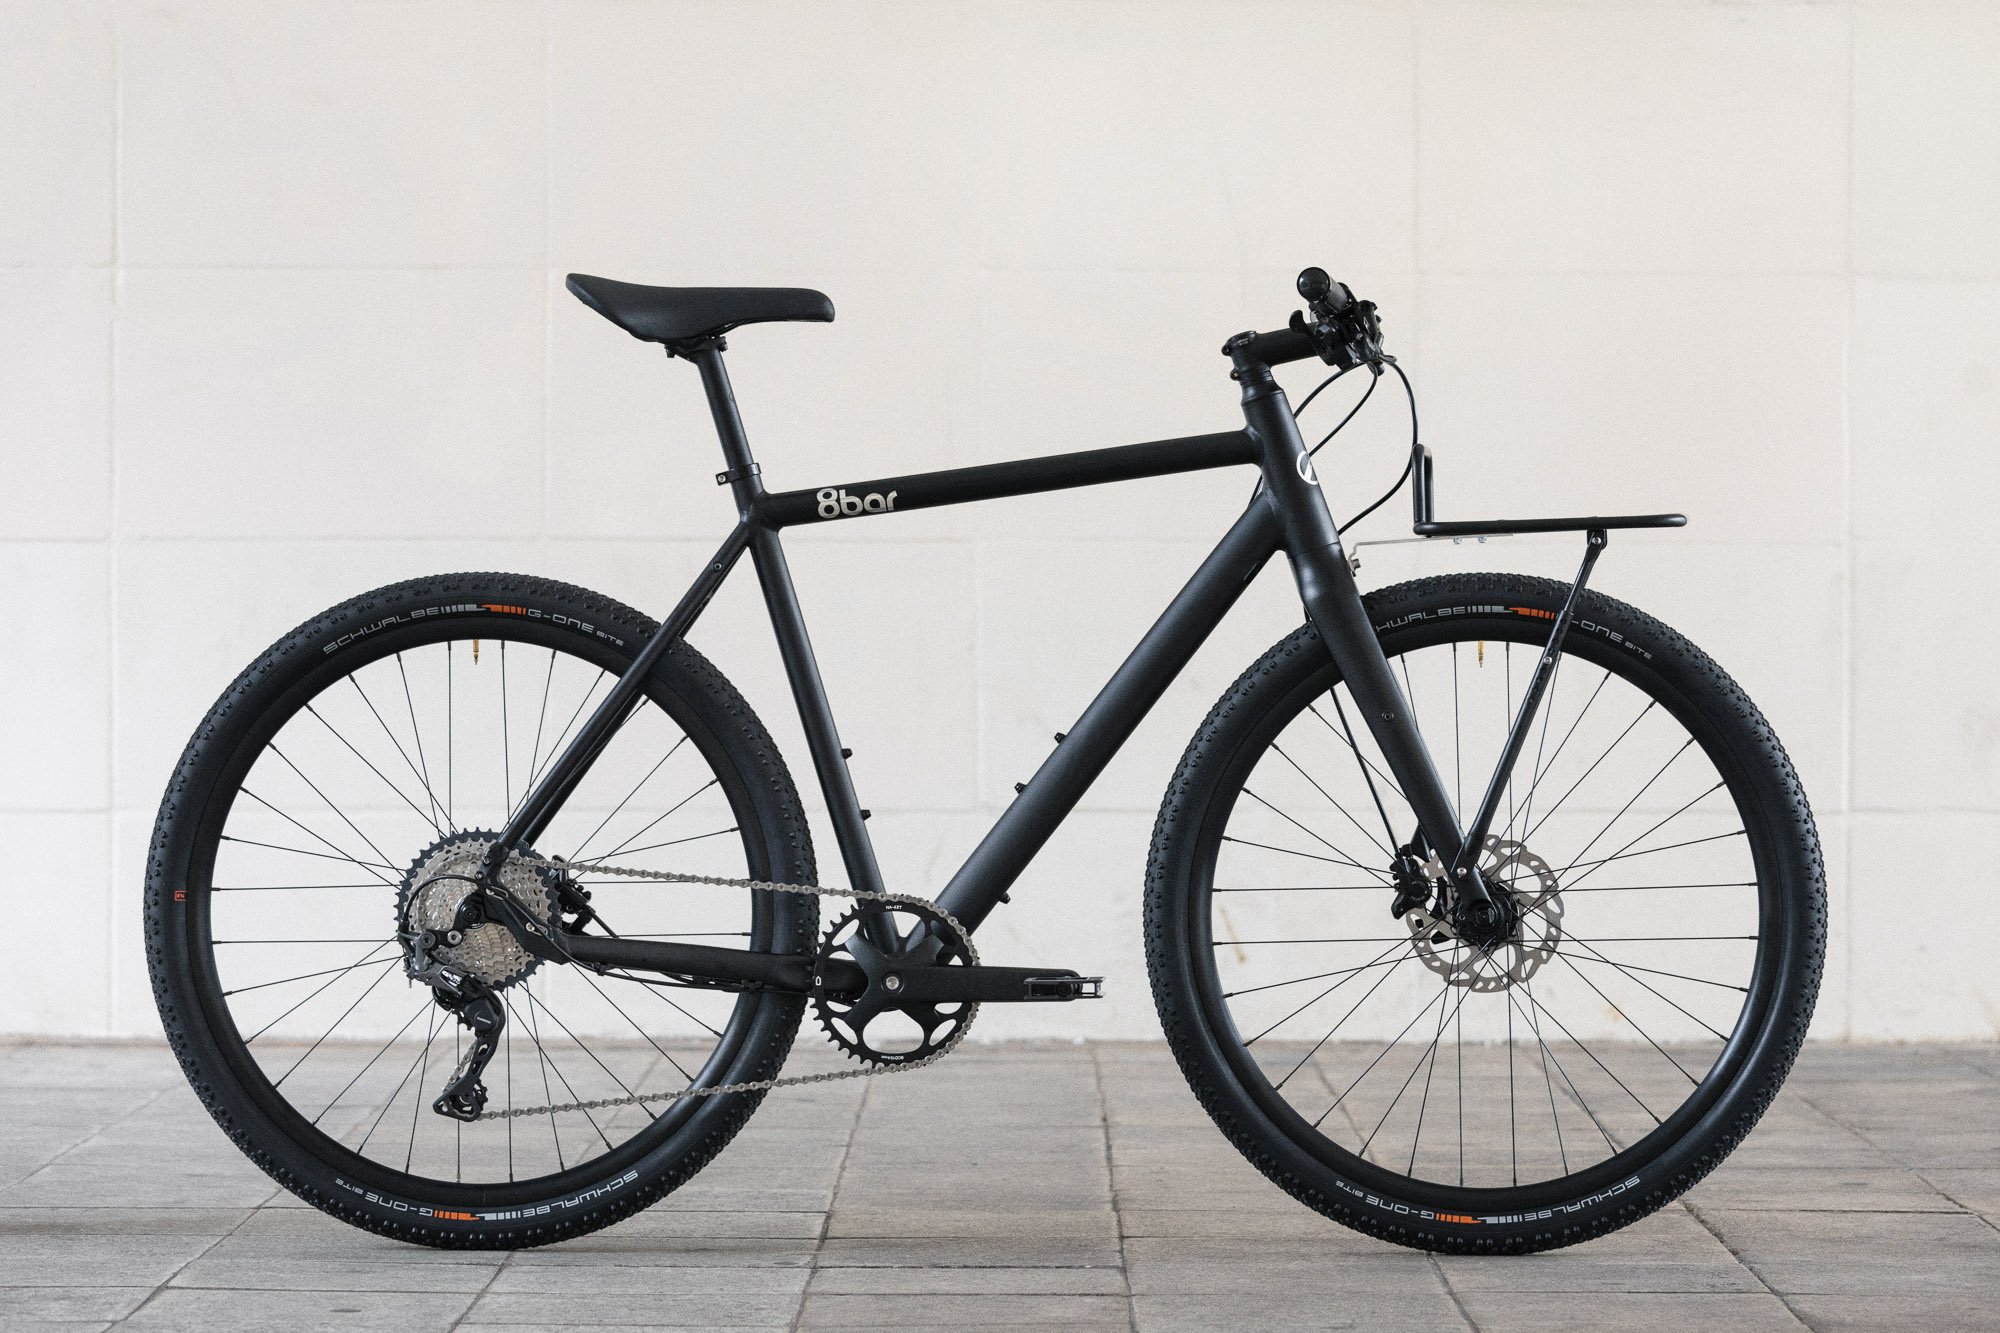 8bar complete bike mitte black urban lr-1